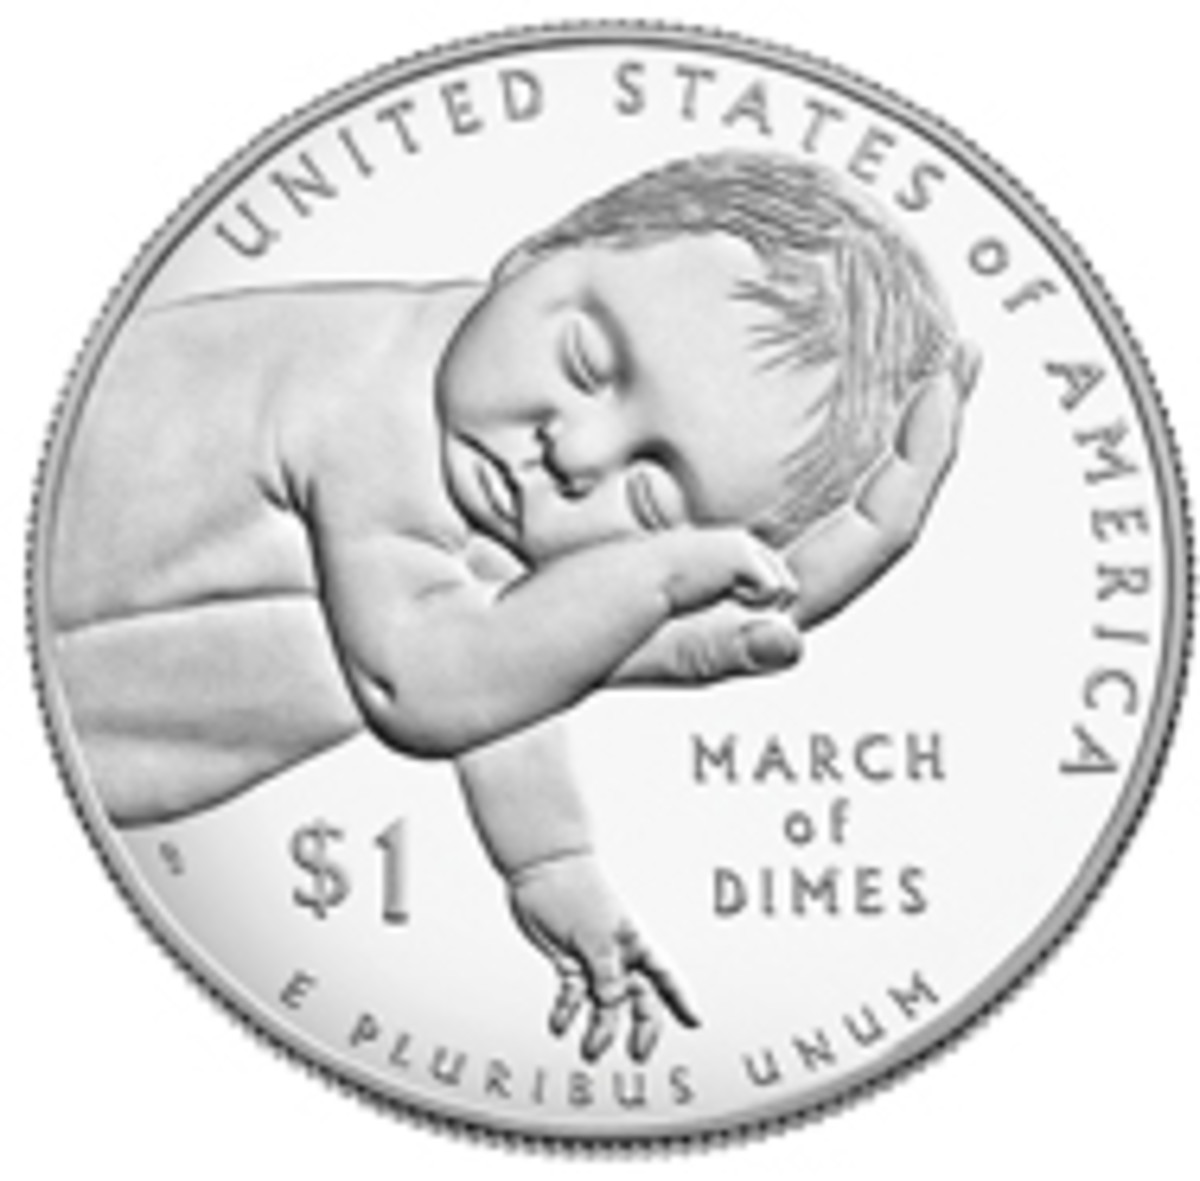 The 2015 $1 Silver March of Dimes Reverse designed by 2018 COTY Award winner for Lifetime Achievement in Coin Design, Don Everhart II.